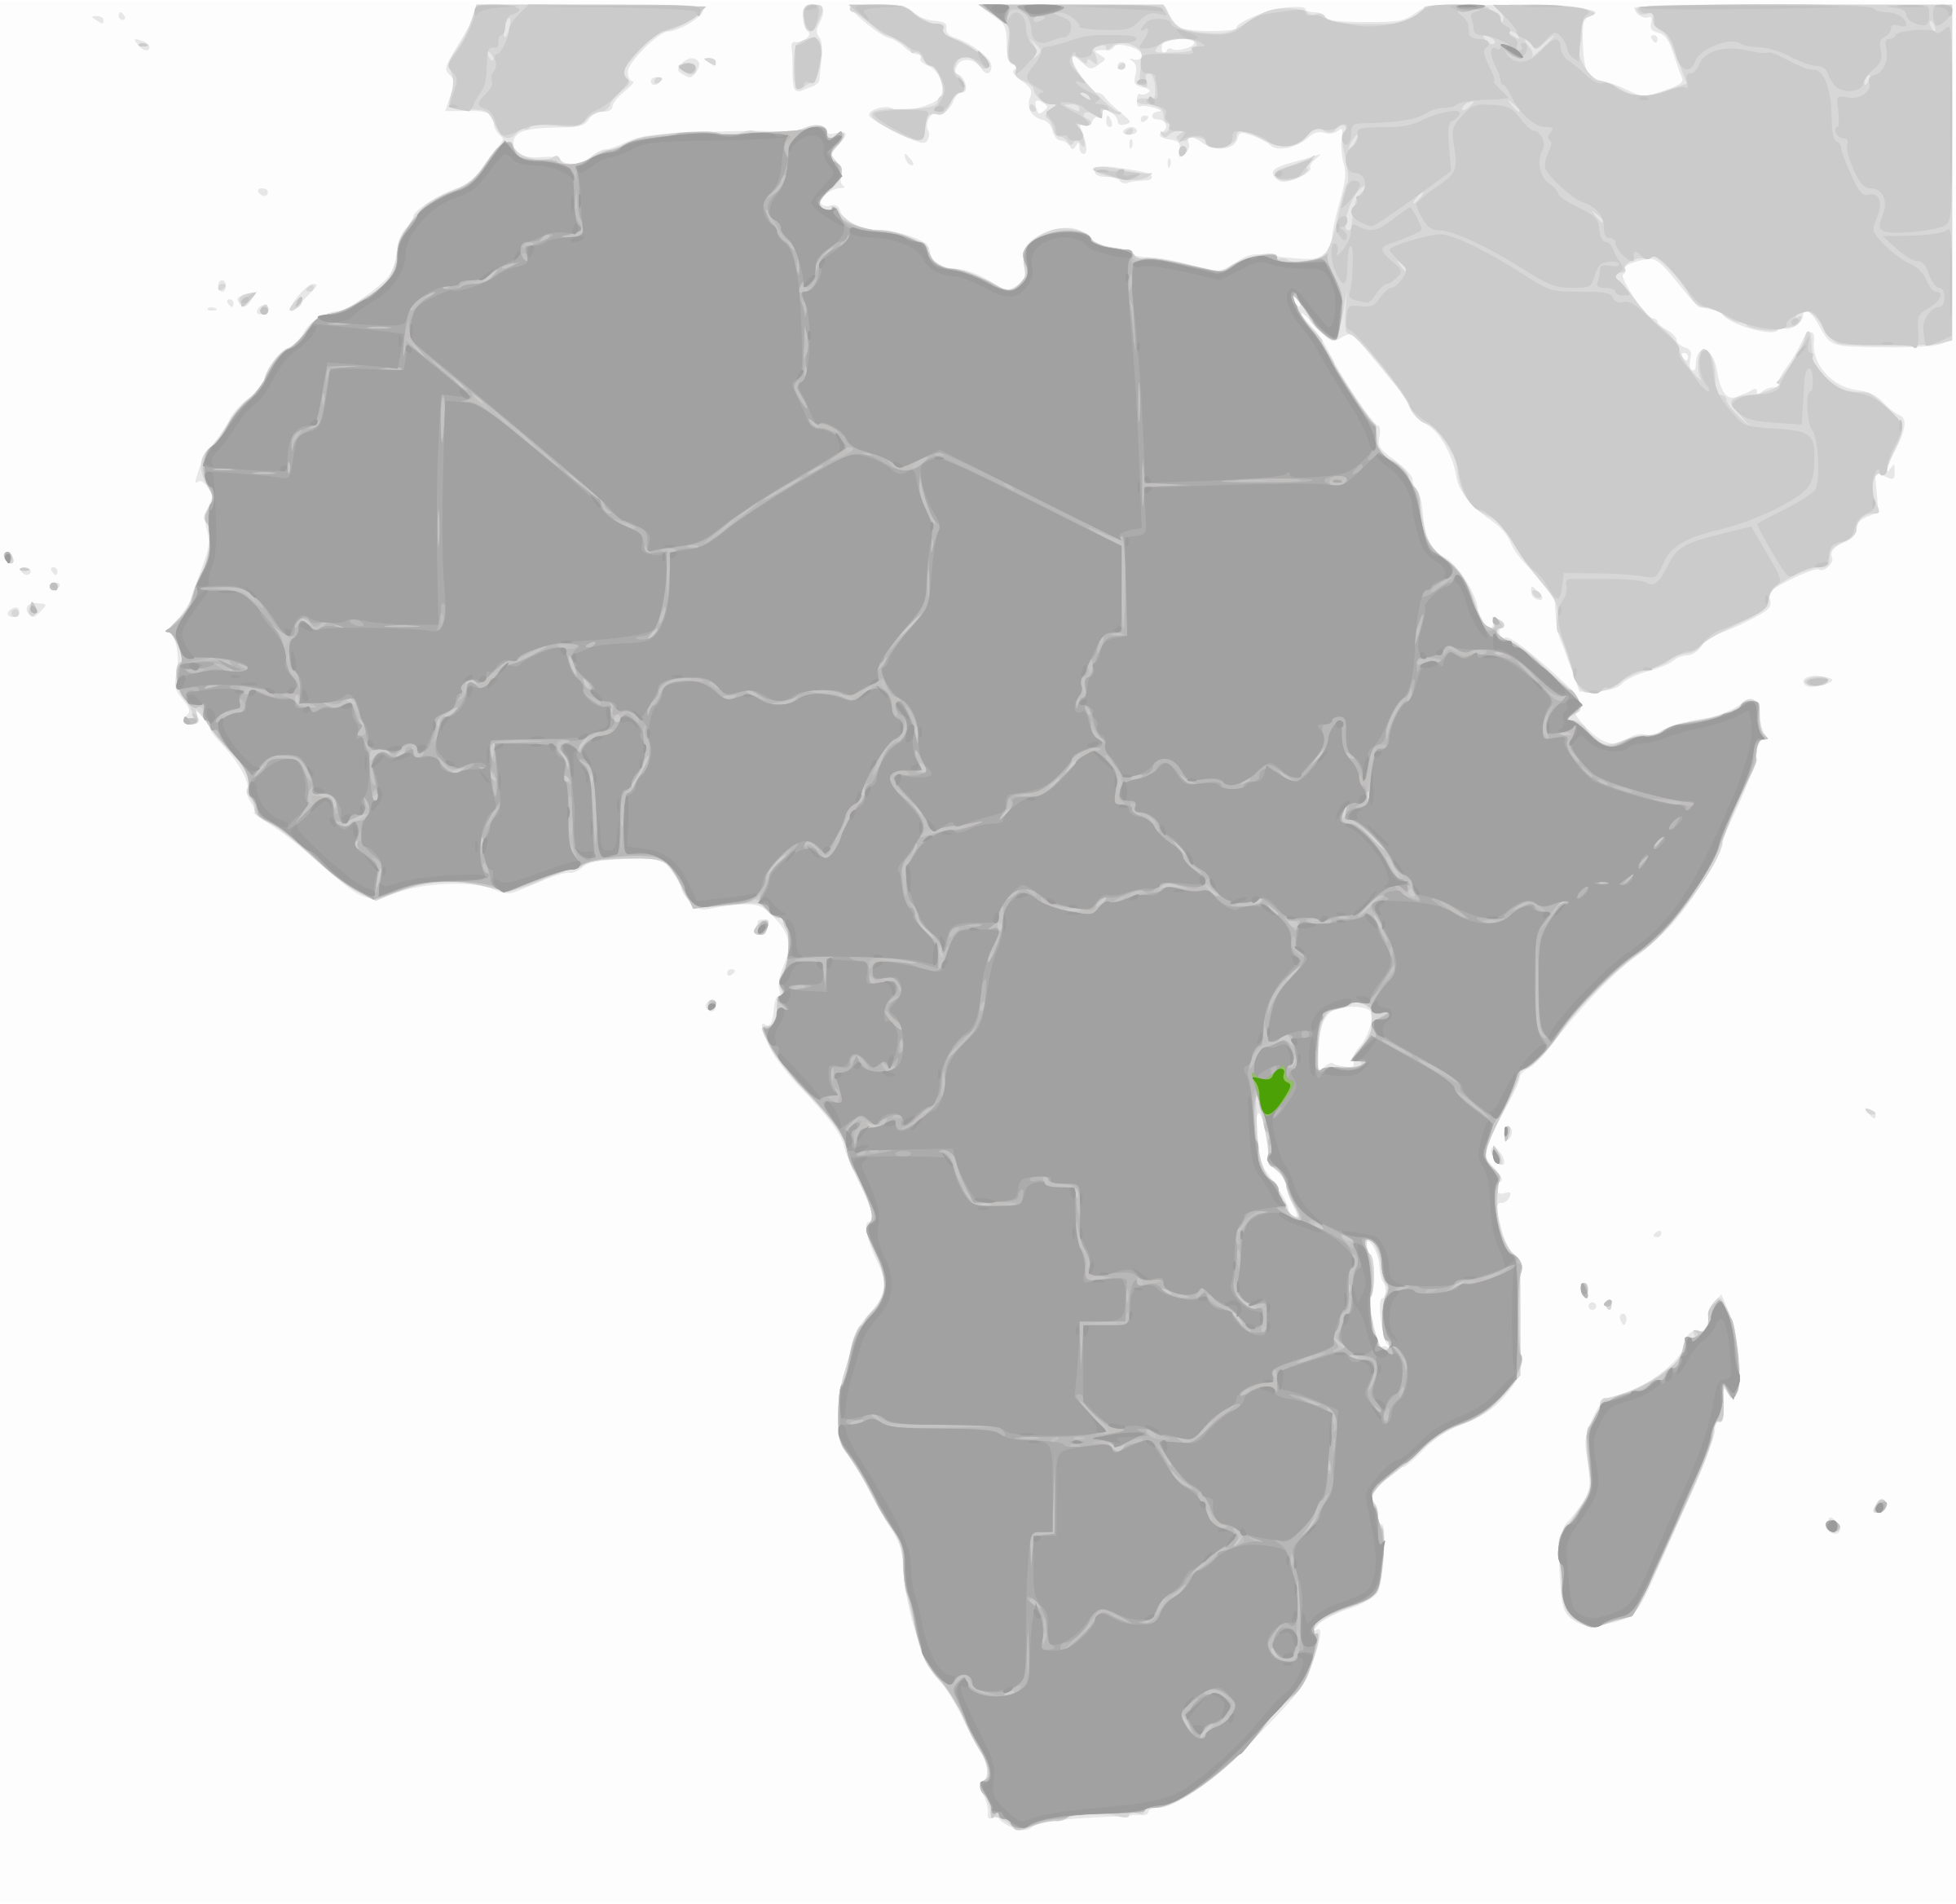 Burundi location by wpclipart